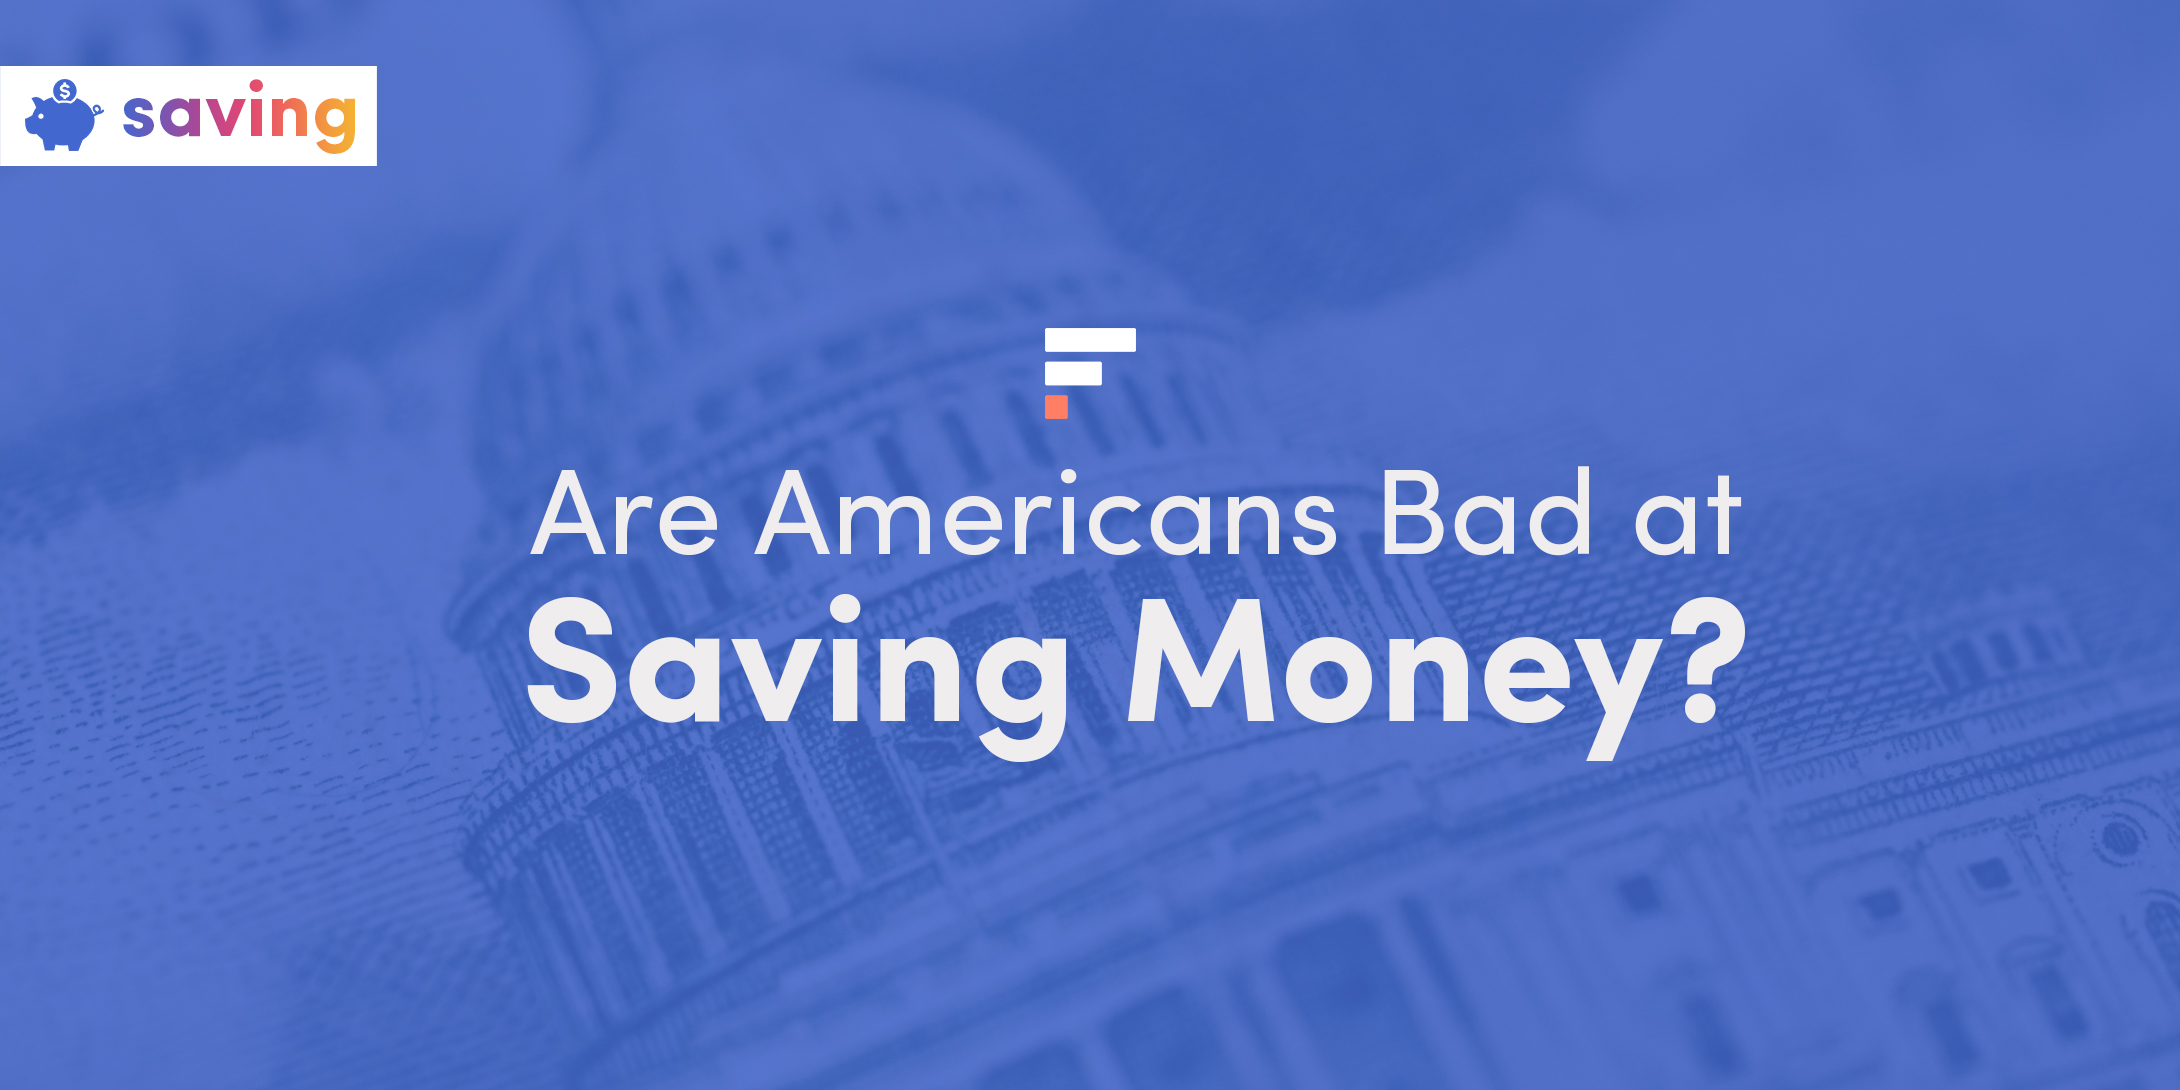 Are Americans bad at saving money?